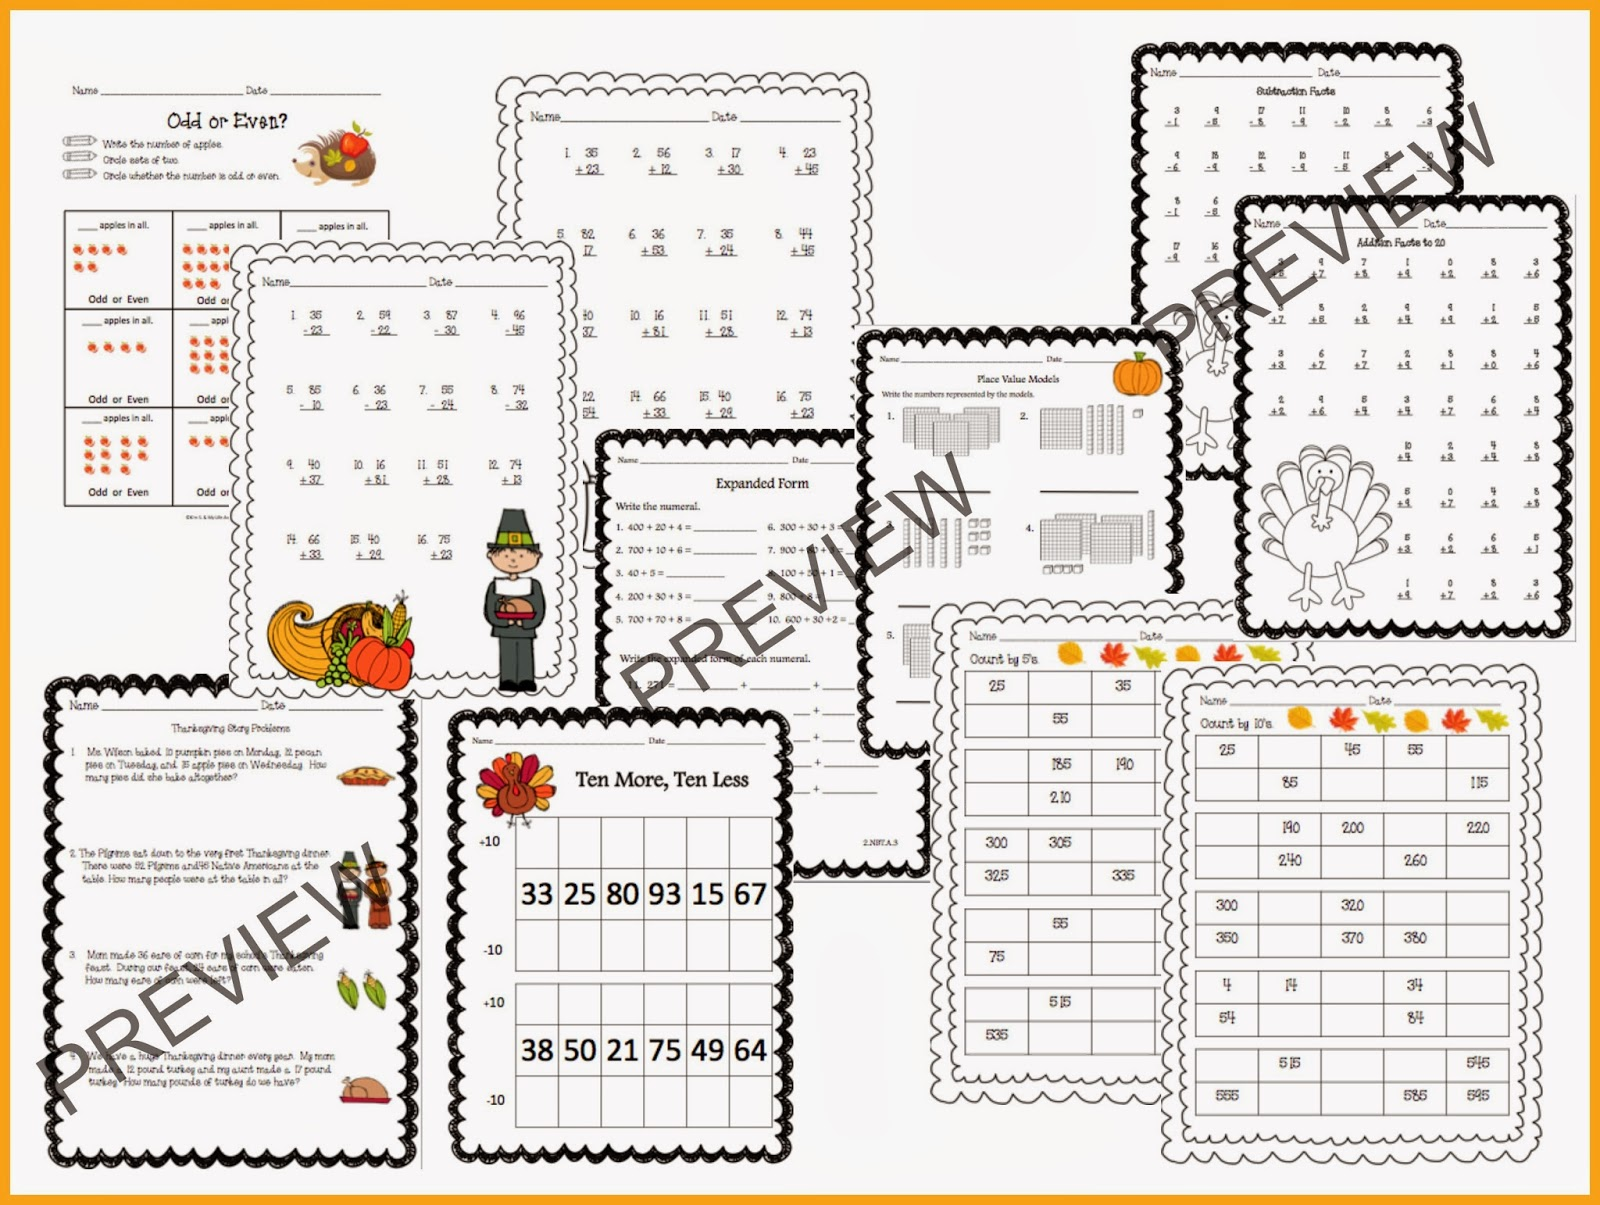 Uncategorized Why Did The Turkey Cross The Road Math Worksheet thanksgiving themed math worksheets aprita com lovely algebra handouts tiny 1b square introduction to online young